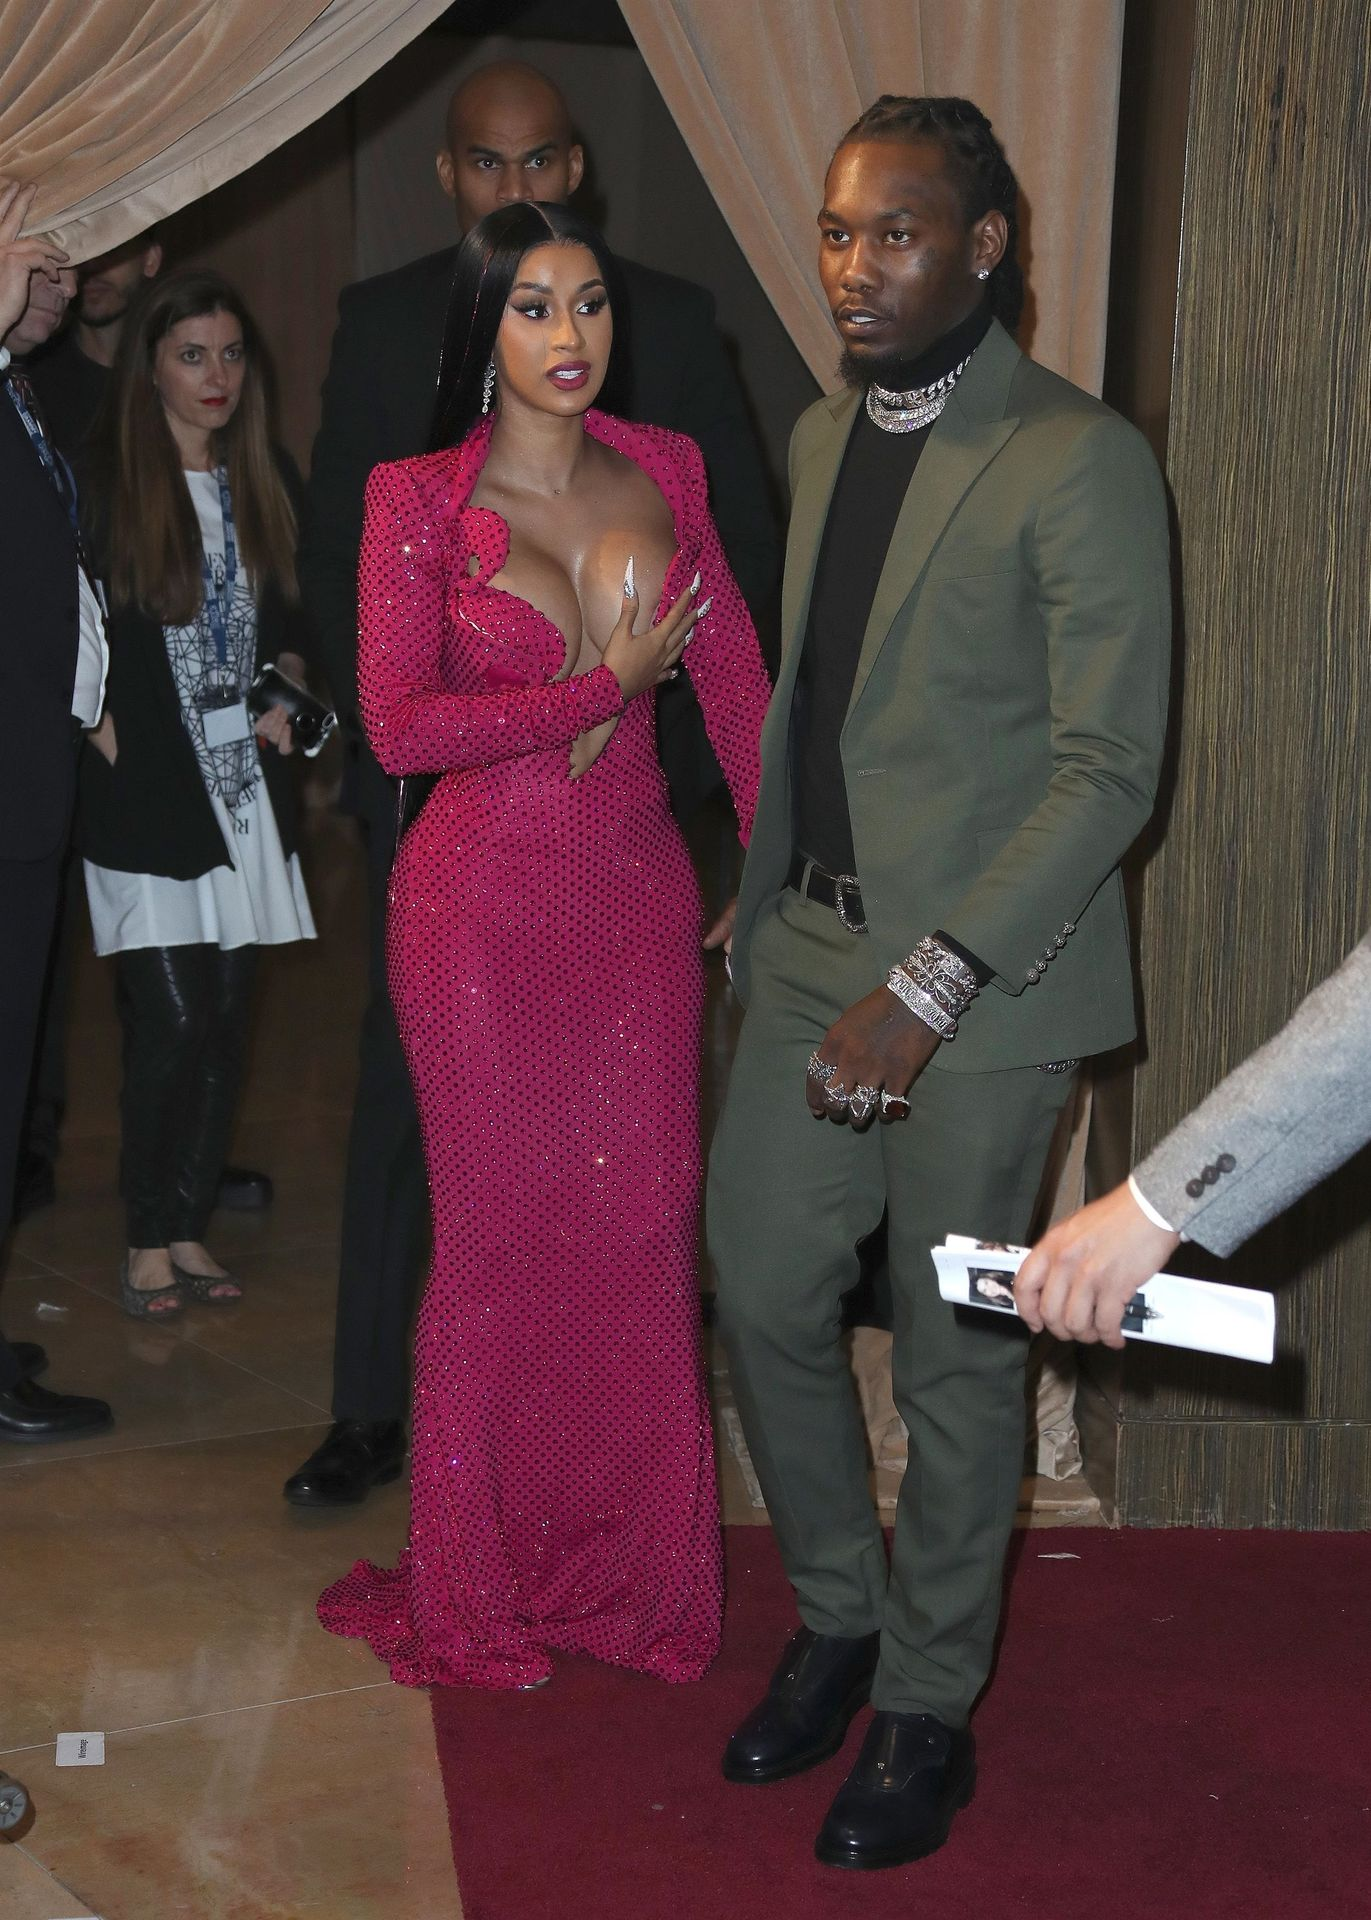 Offset Covers Cardi B's Boobs To Avoid Wardrobe Malfunction At Clive Davis Pre Grammy Party 0003